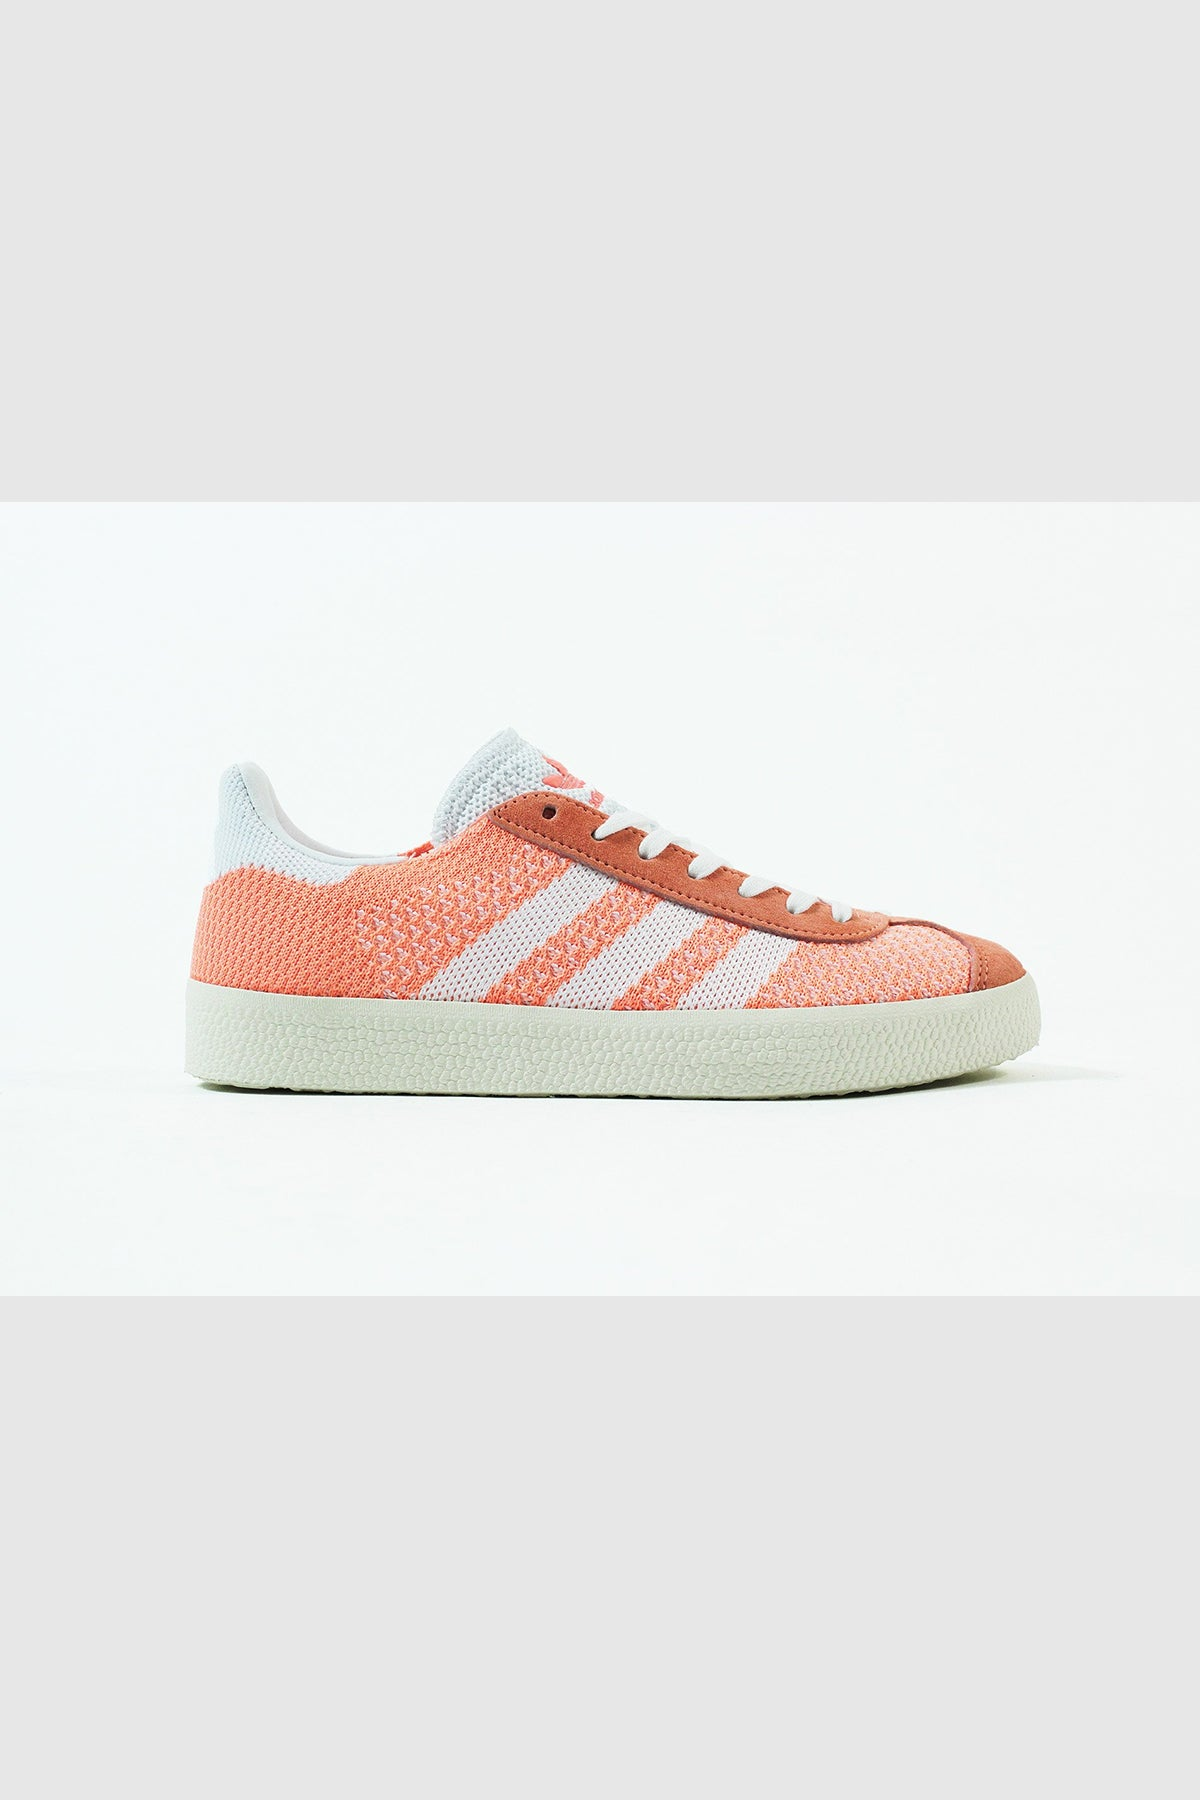 Adidas - Gazelle Primeknit Women (Sunglow/ White)